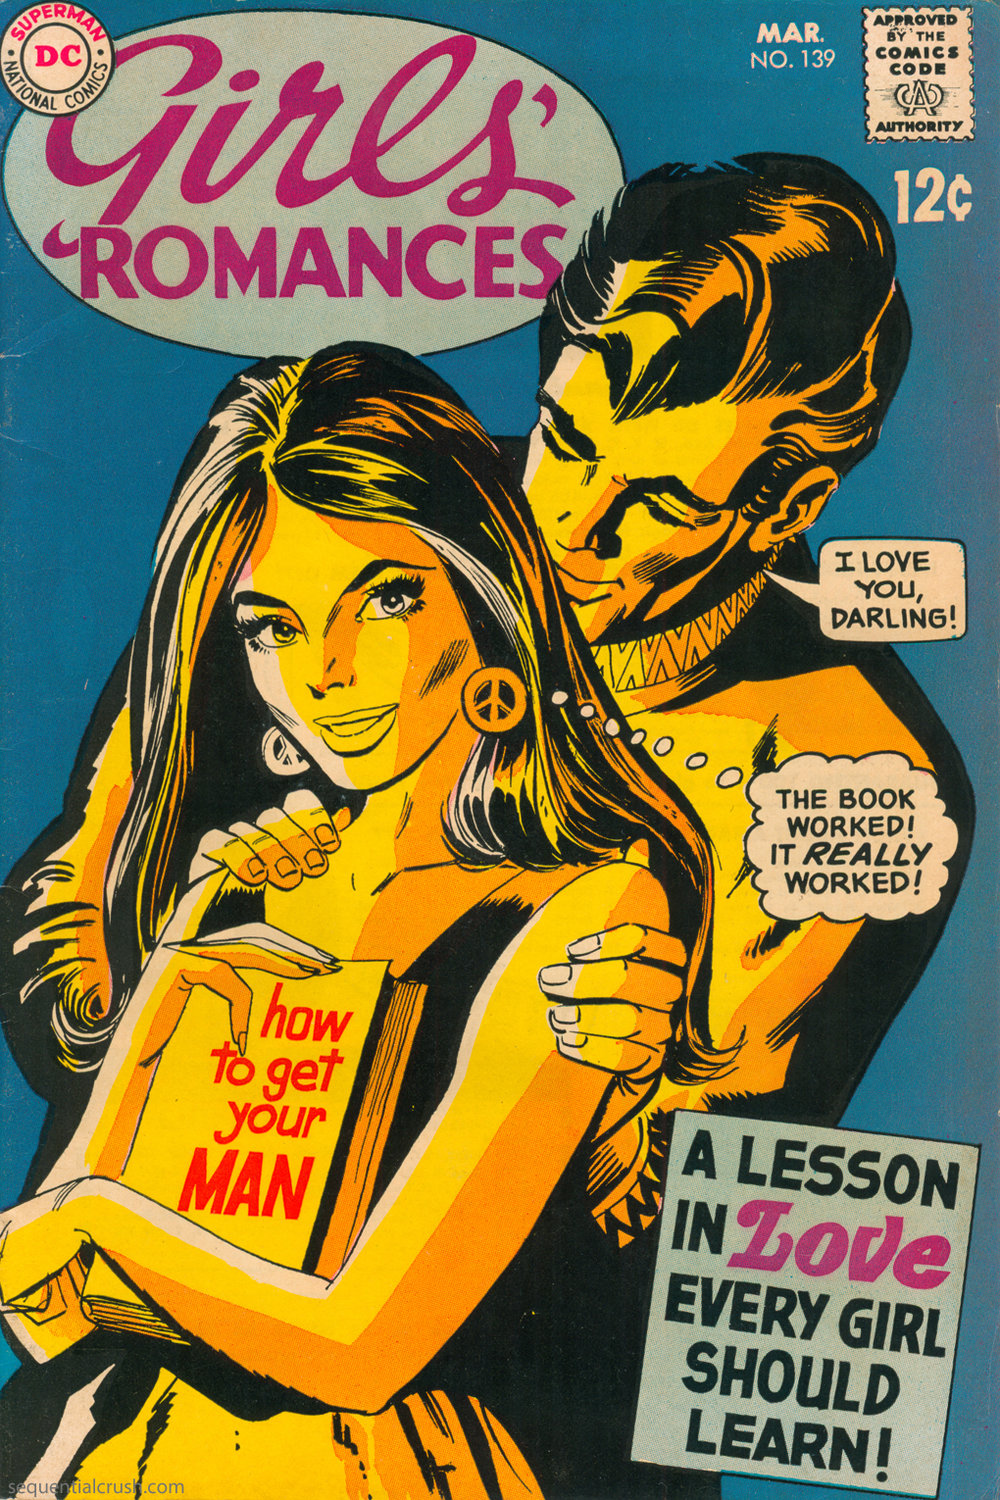 Girls' Romances  #139 (March 1969) - Cover art by Dick Giordano (GCD). Interior art appears to be a combination of Ric Estrada, Jack Abel, and maybe even Win Mortimer.